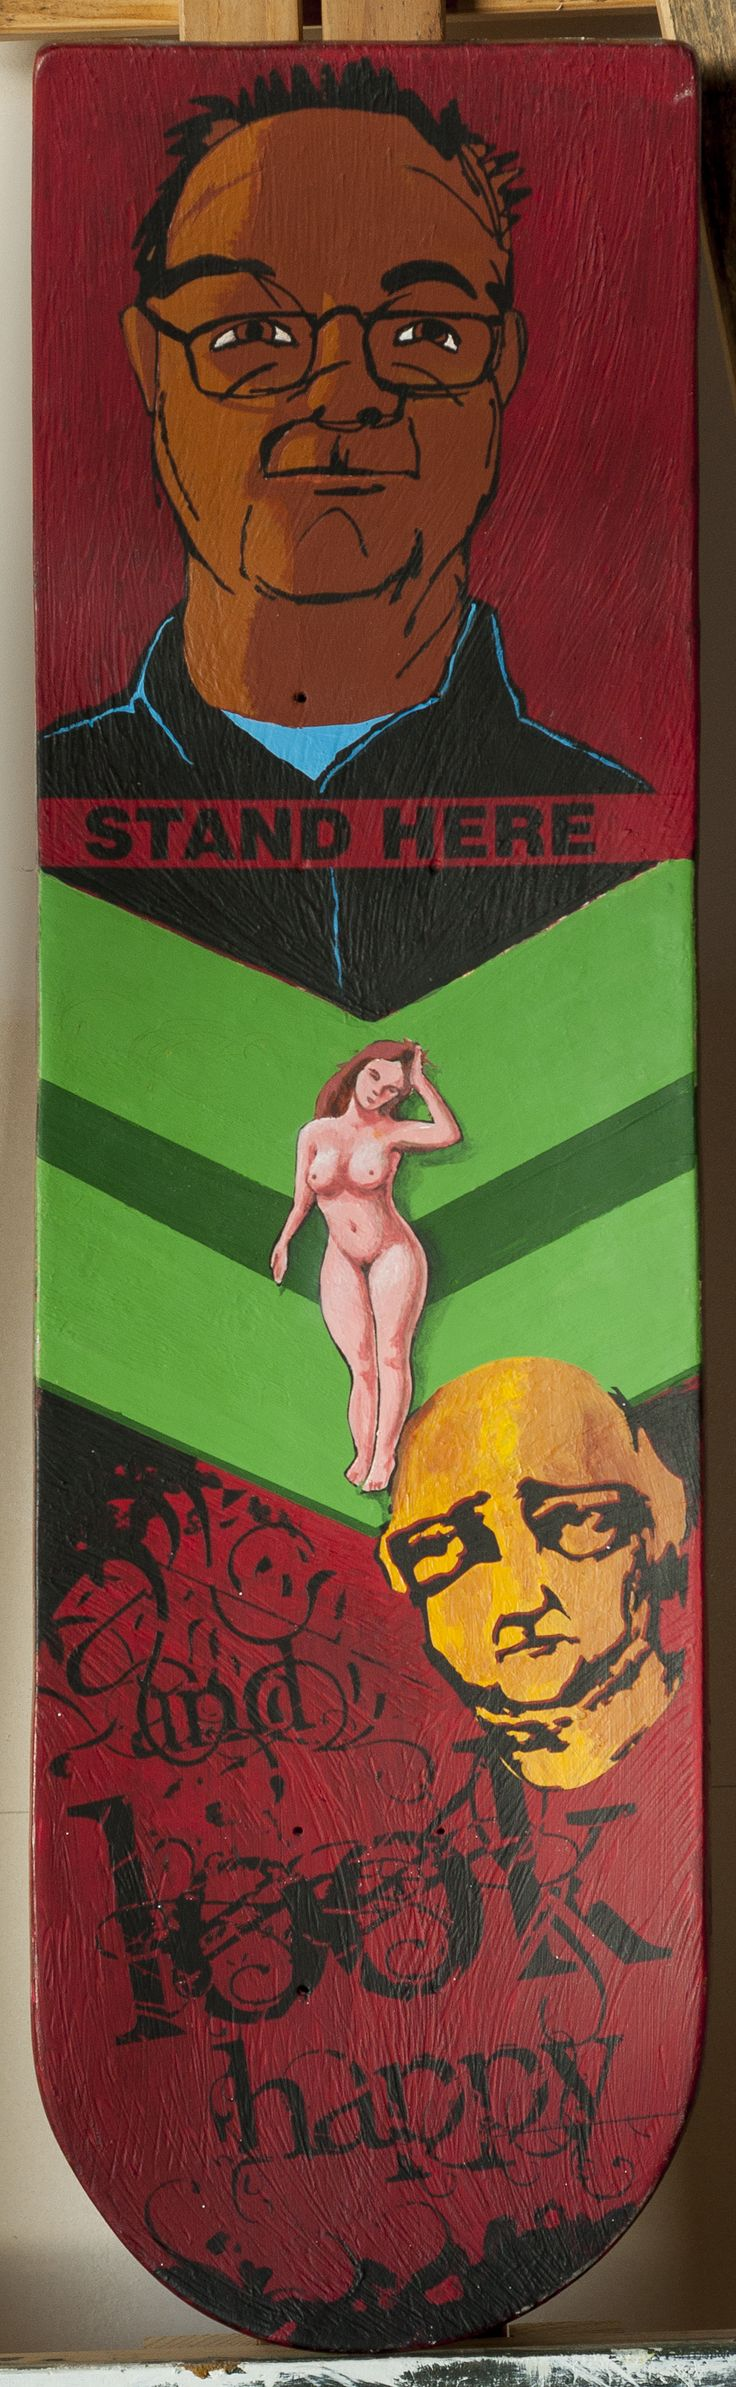 Stand Here Acrylic on Skateboard